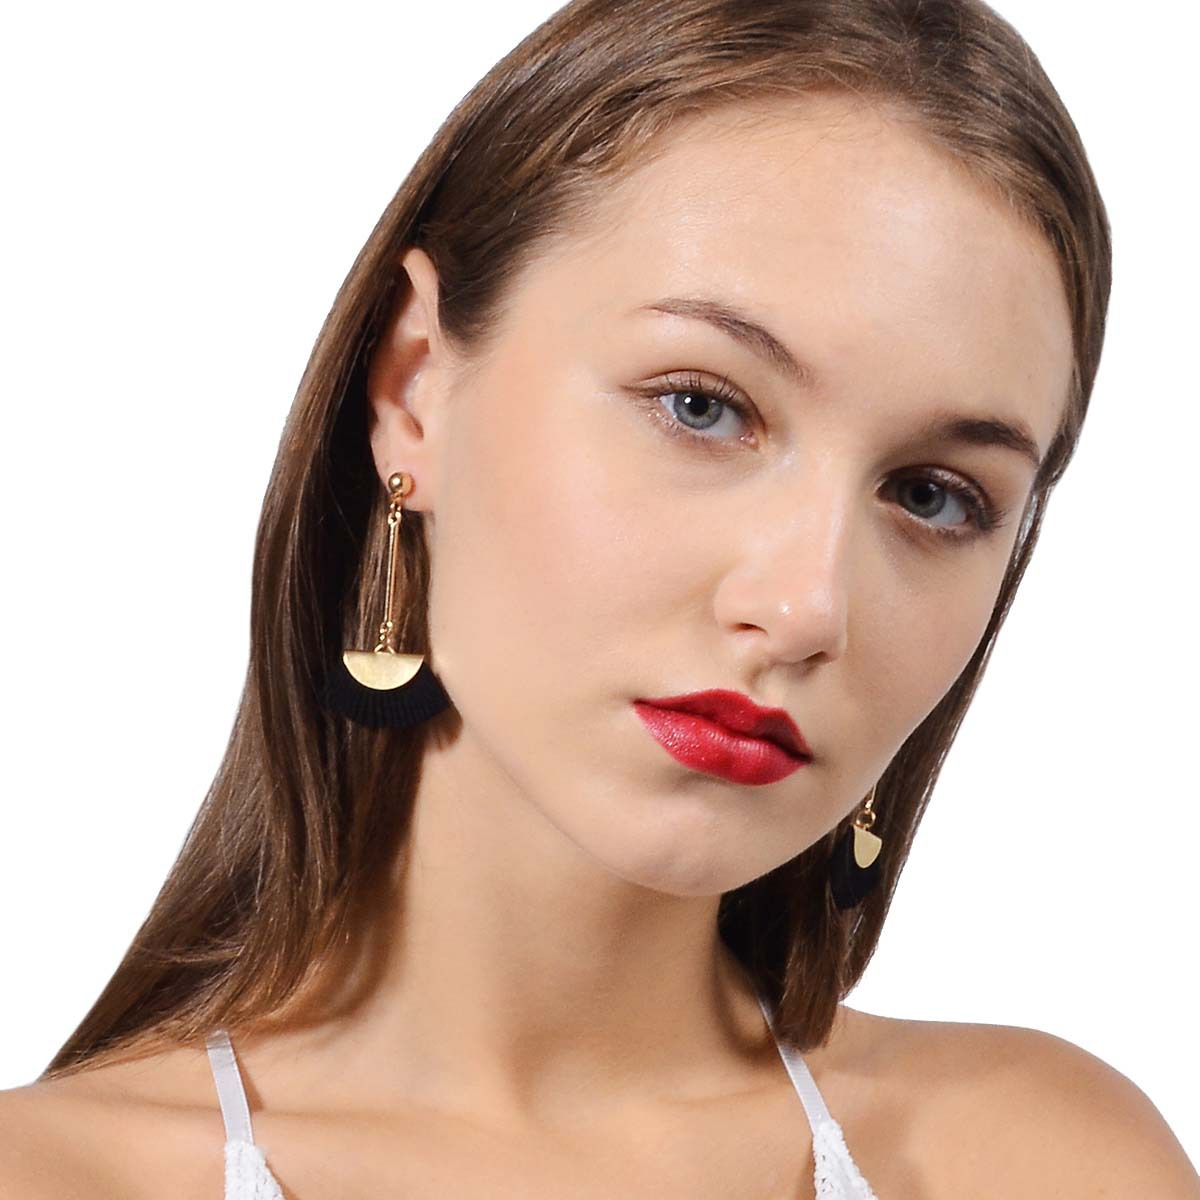 Occident and the United States alloy plating earring (B0815 wine red)NHXR1460-B0815 wine red